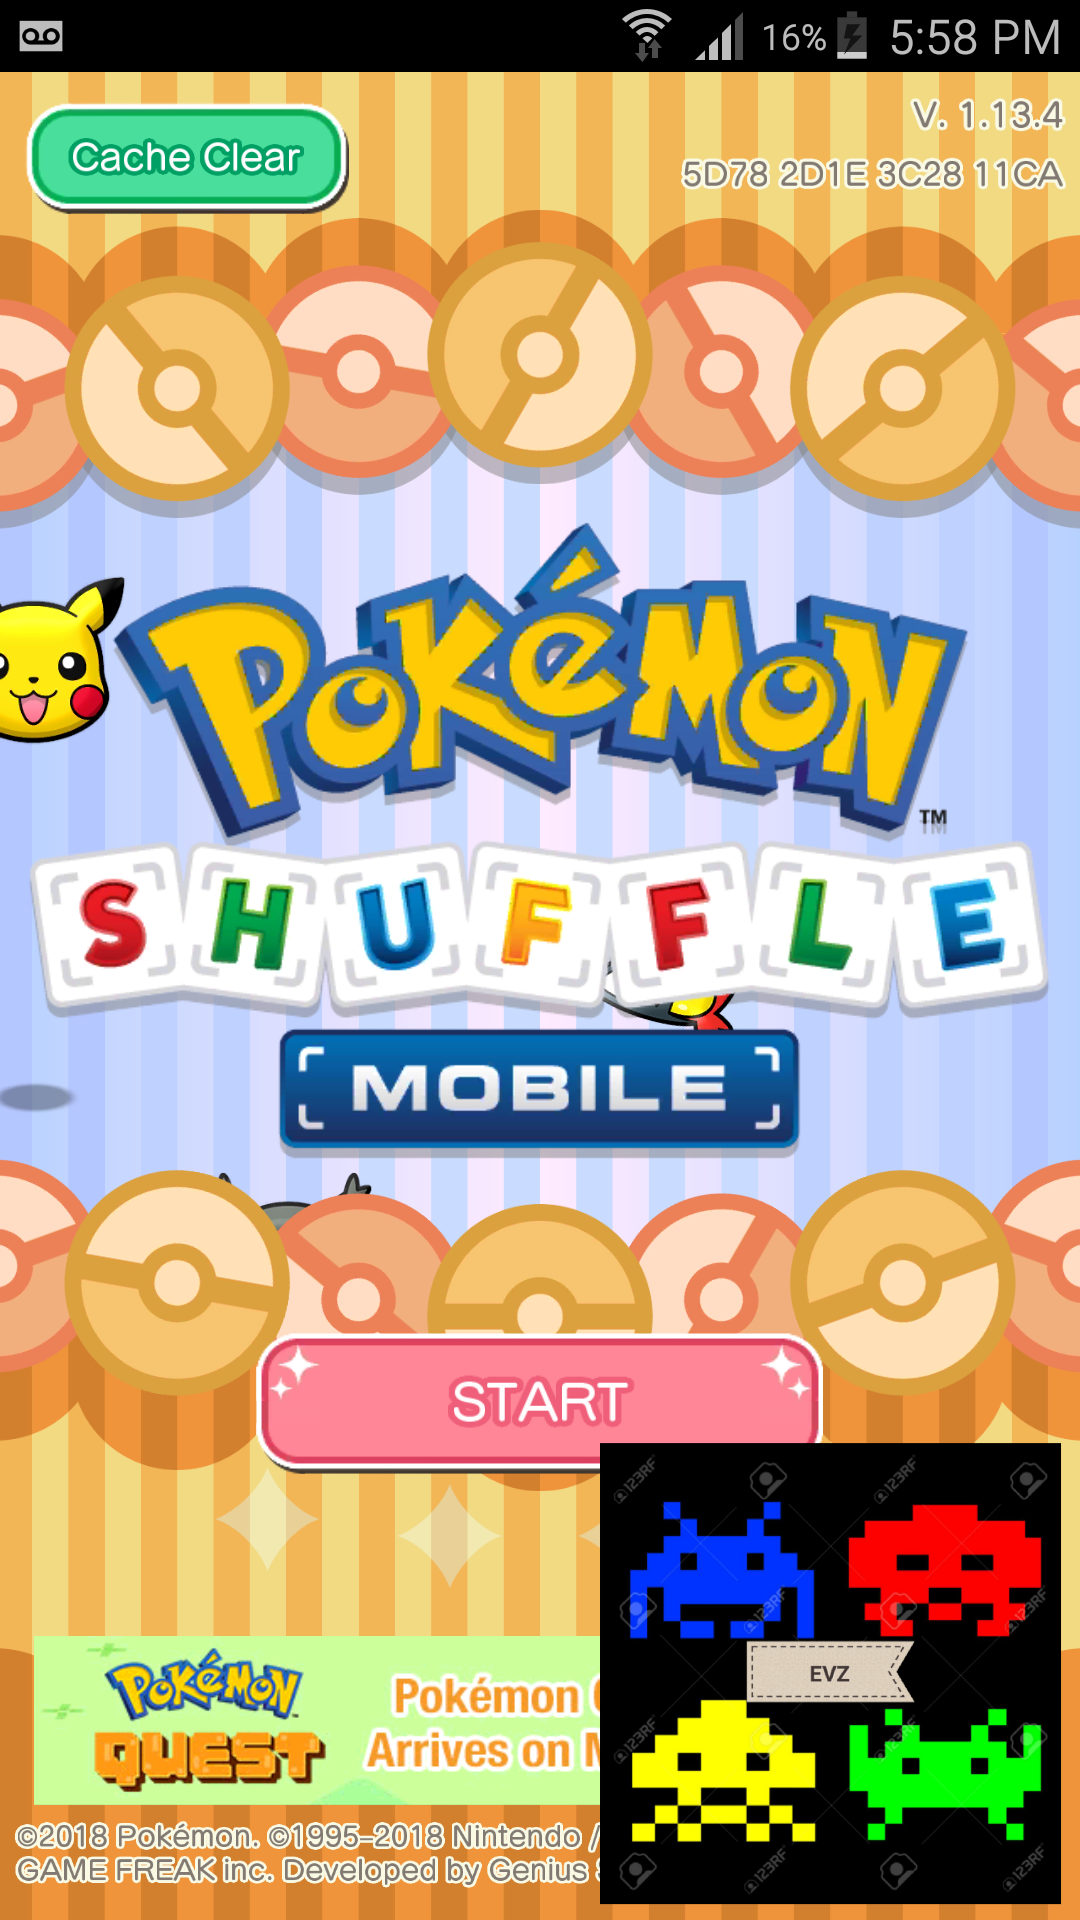 ministorm04: Pokemon Shuffle Mobile: Stage 011 (Android) 3,828 points on 2019-06-06 13:00:55